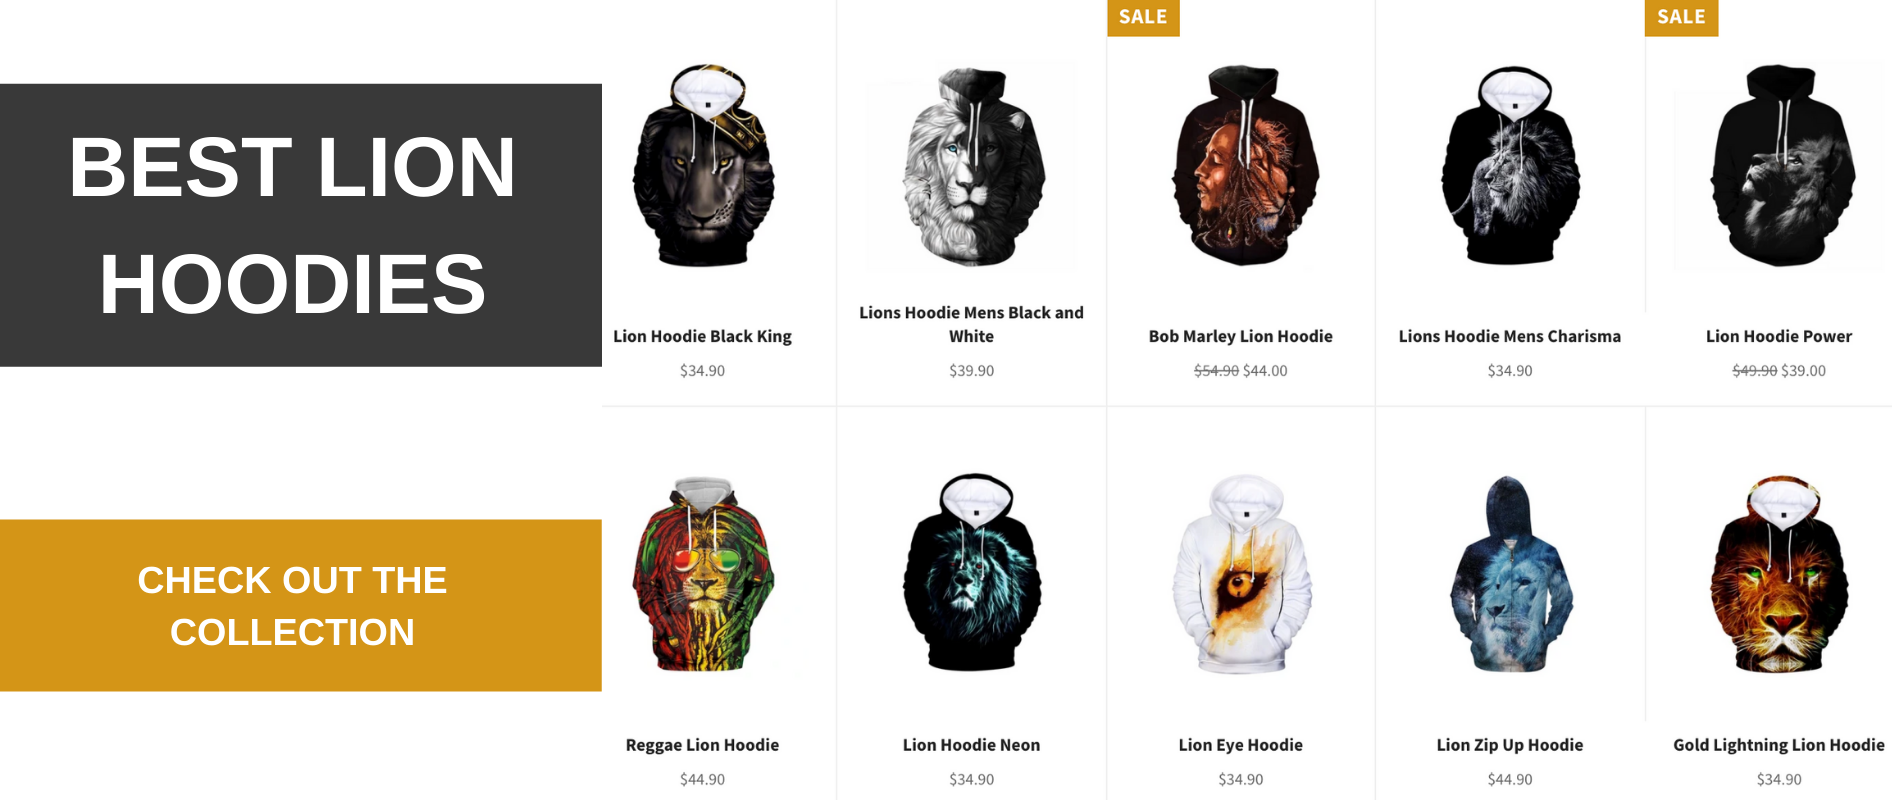 Lion Hoodies collection.